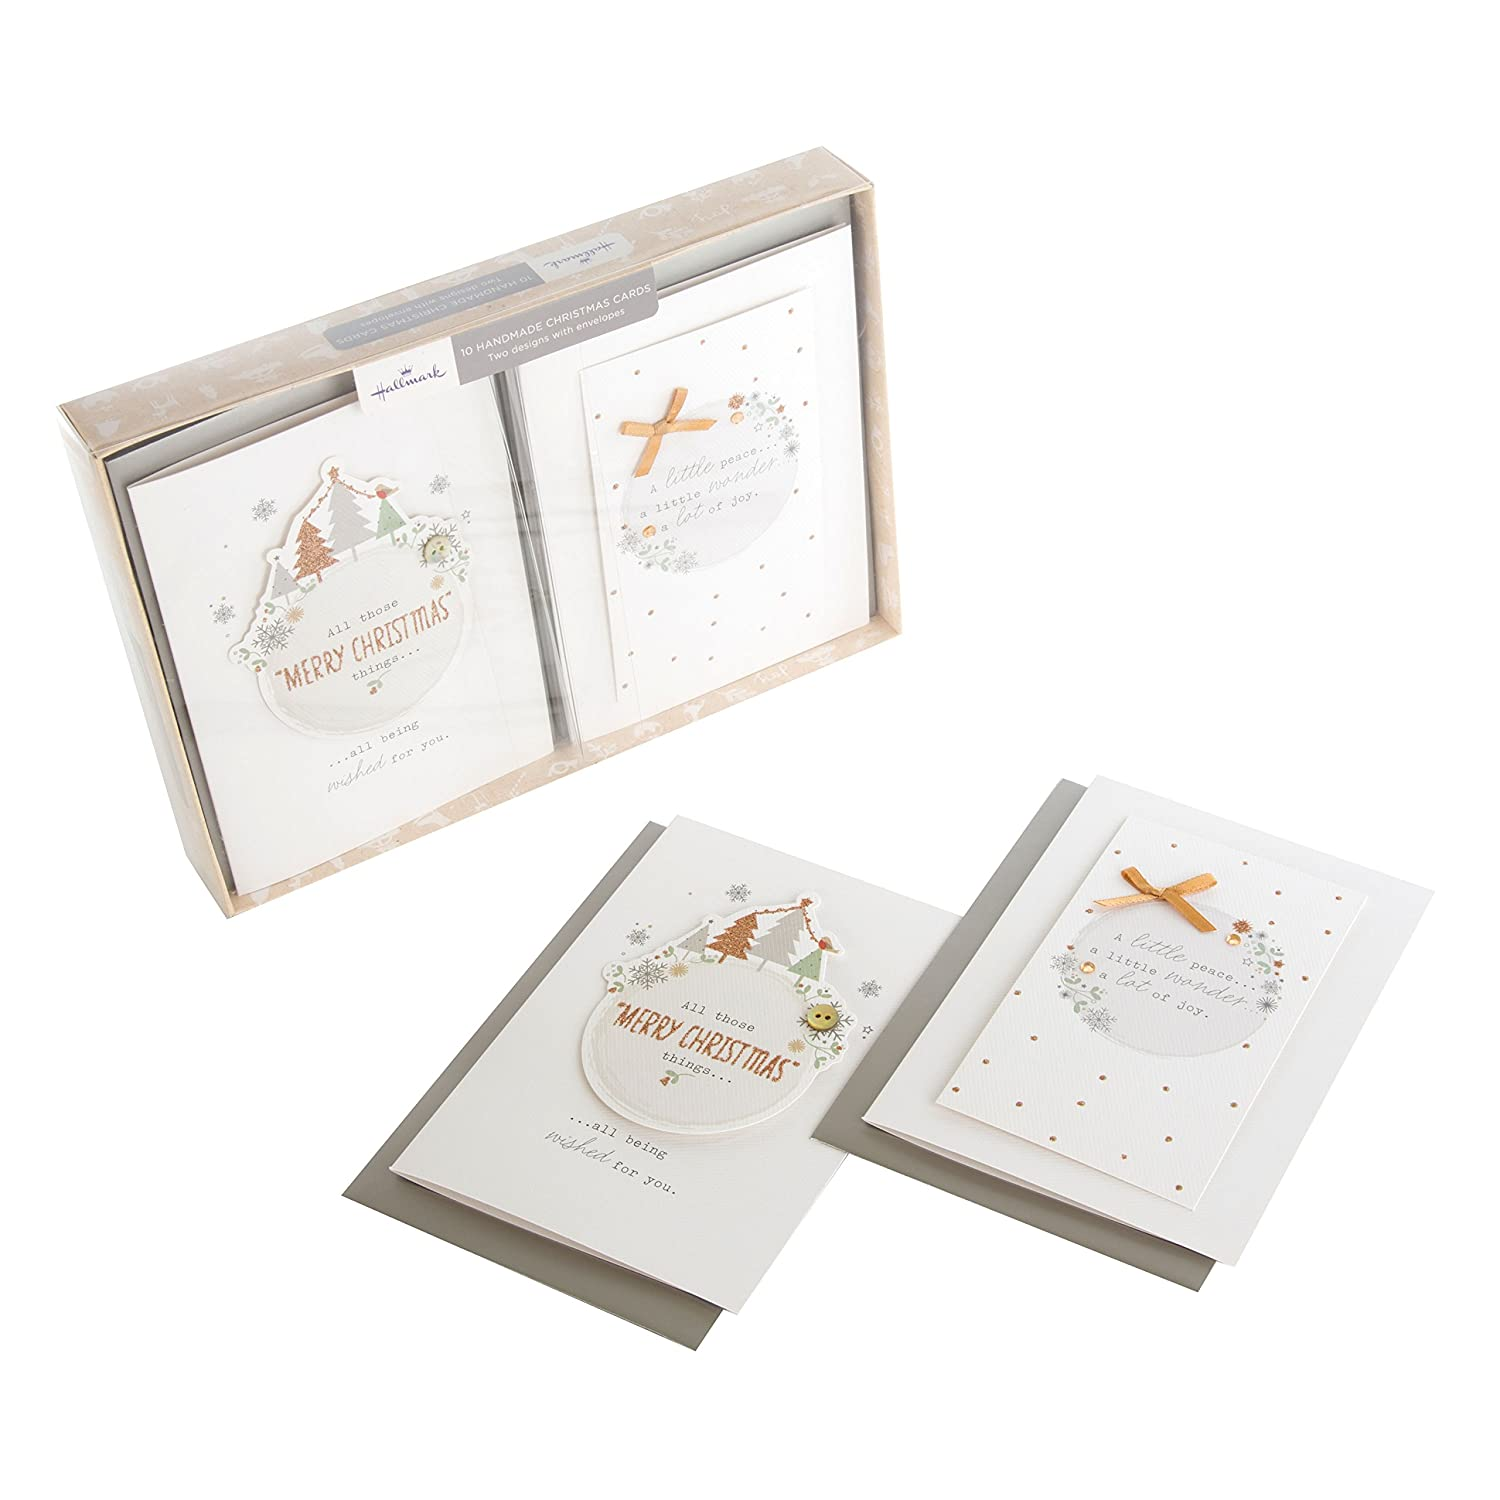 Hallmark Handmade Christmas Card Pack